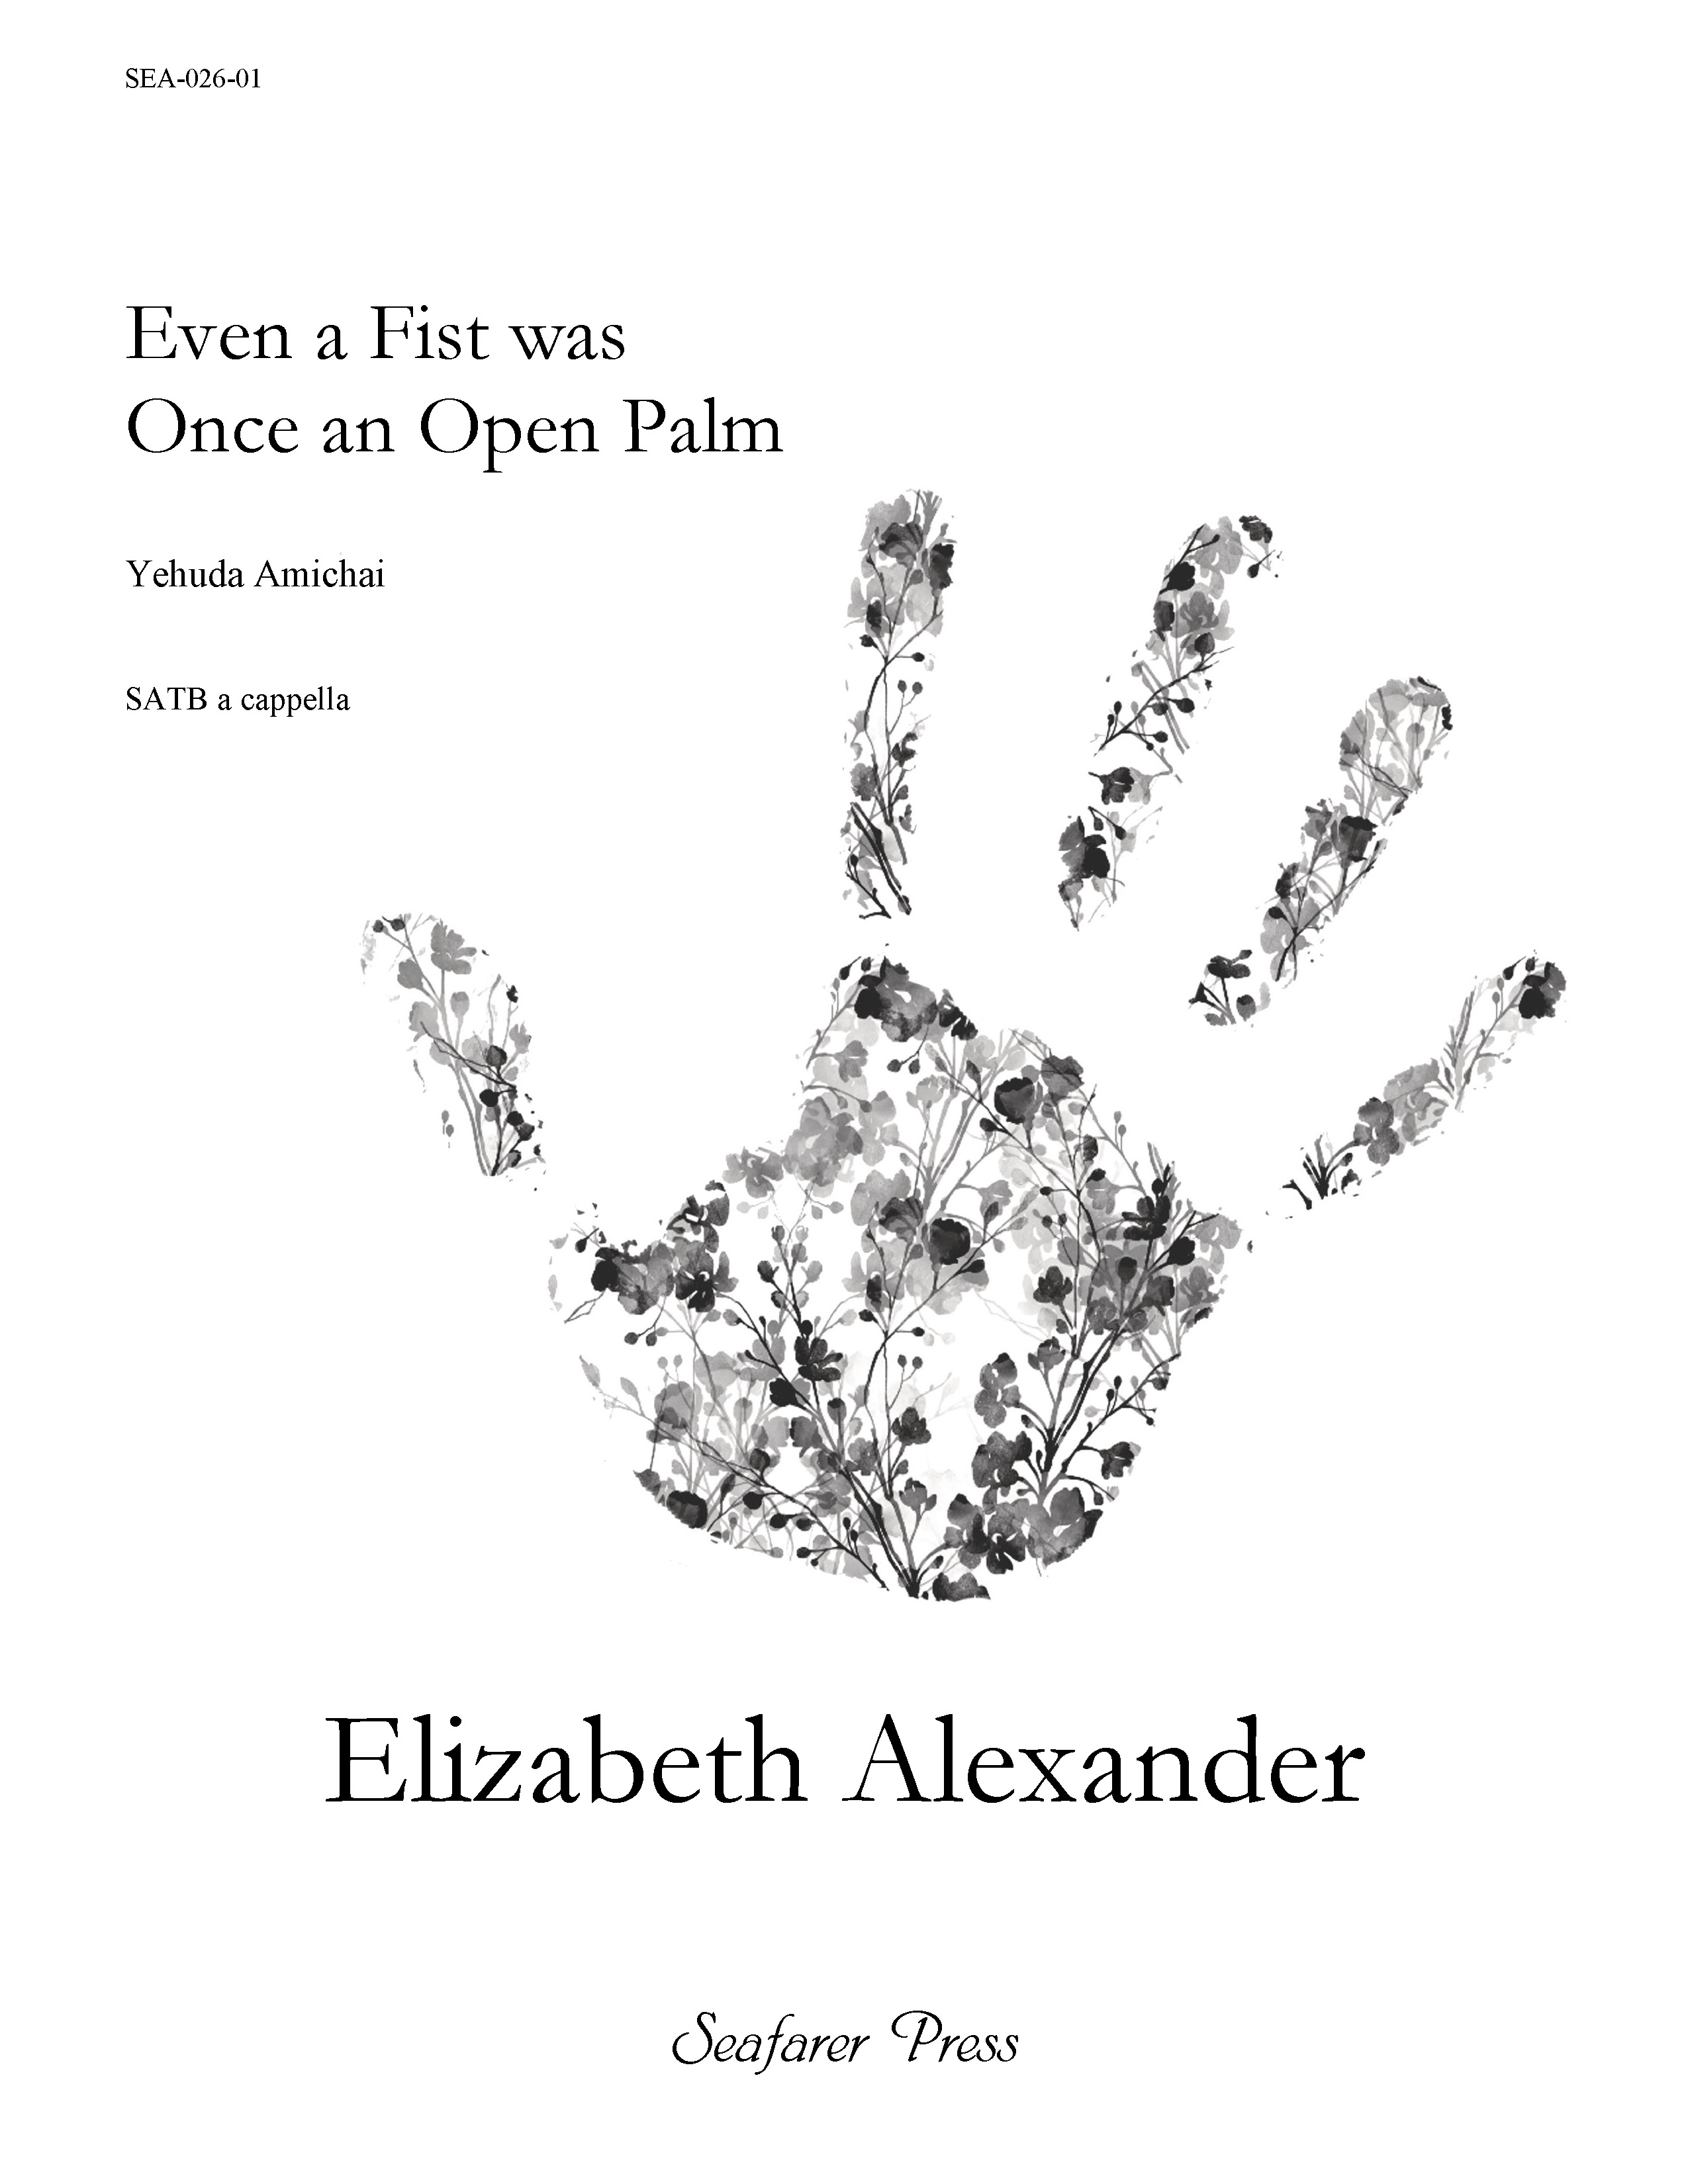 SEA-026-01 - Even a Fist Was Once an Open Palm